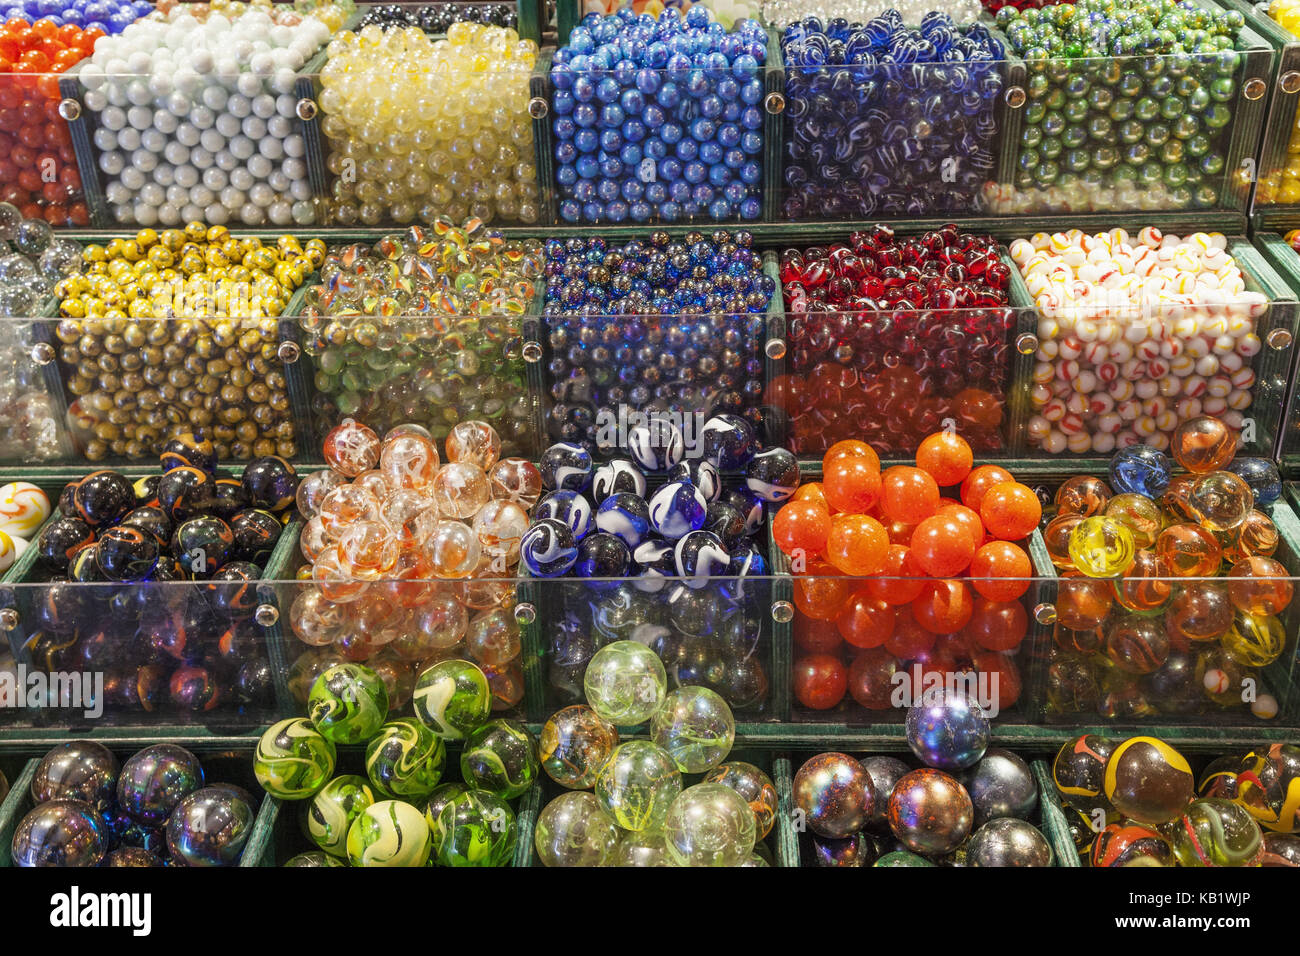 England, Devon, Bovey Tracey, House of Marbles, coloured glass marbles, - Stock Image